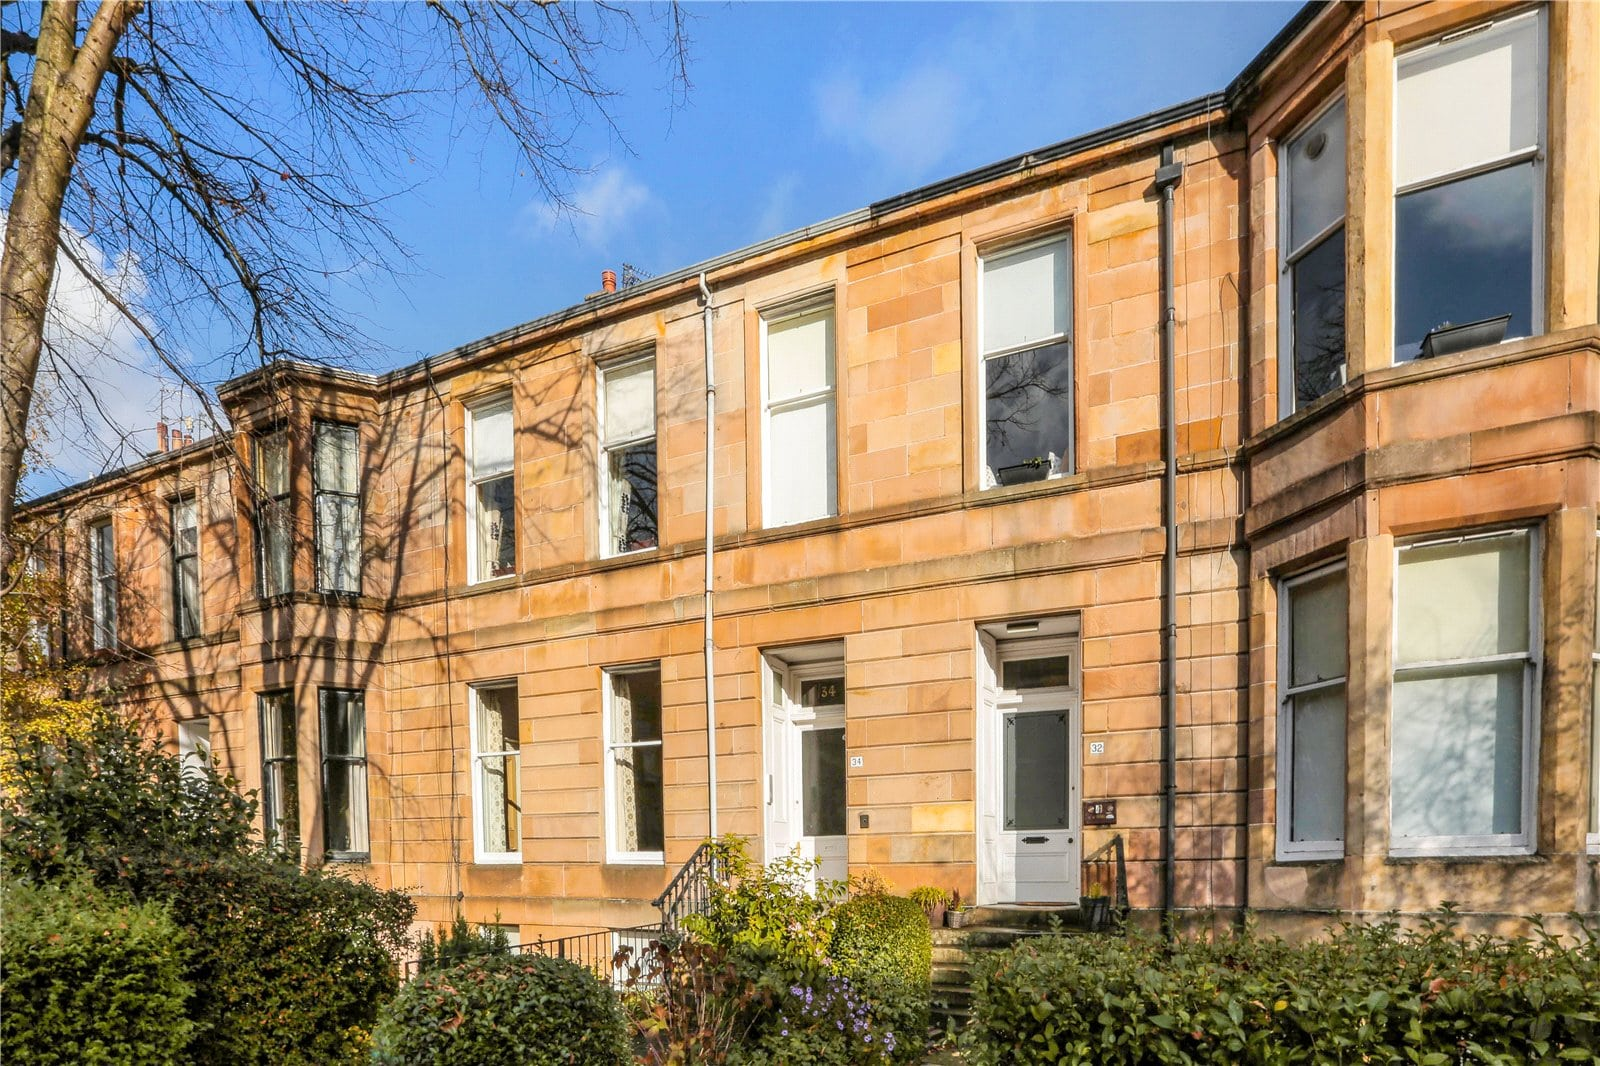 Upgraded one bedroom flat in sought-after conservation area